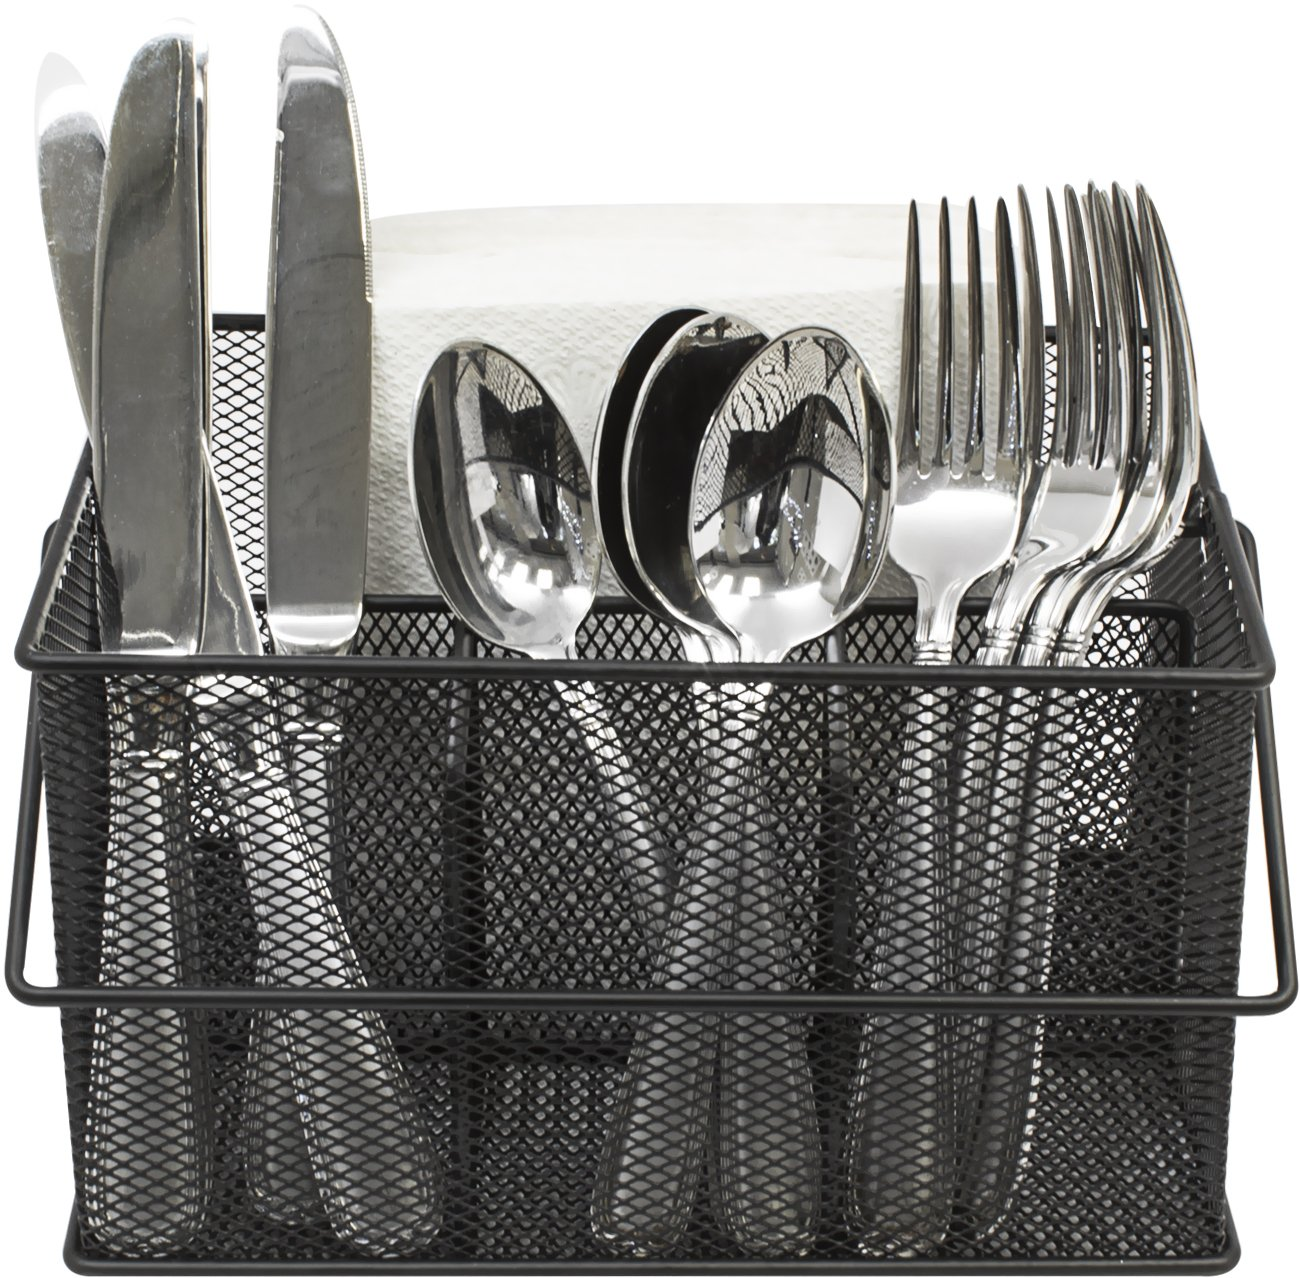 Sorbus Utensil Caddy — Silverware, Napkin Holder, and Condiment Organizer — Multi-Purpose Steel Mesh Caddy—Ideal for Kitchen, Dining, Entertaining, Tailgating, Picnics, and much more (Black) by Sorbus